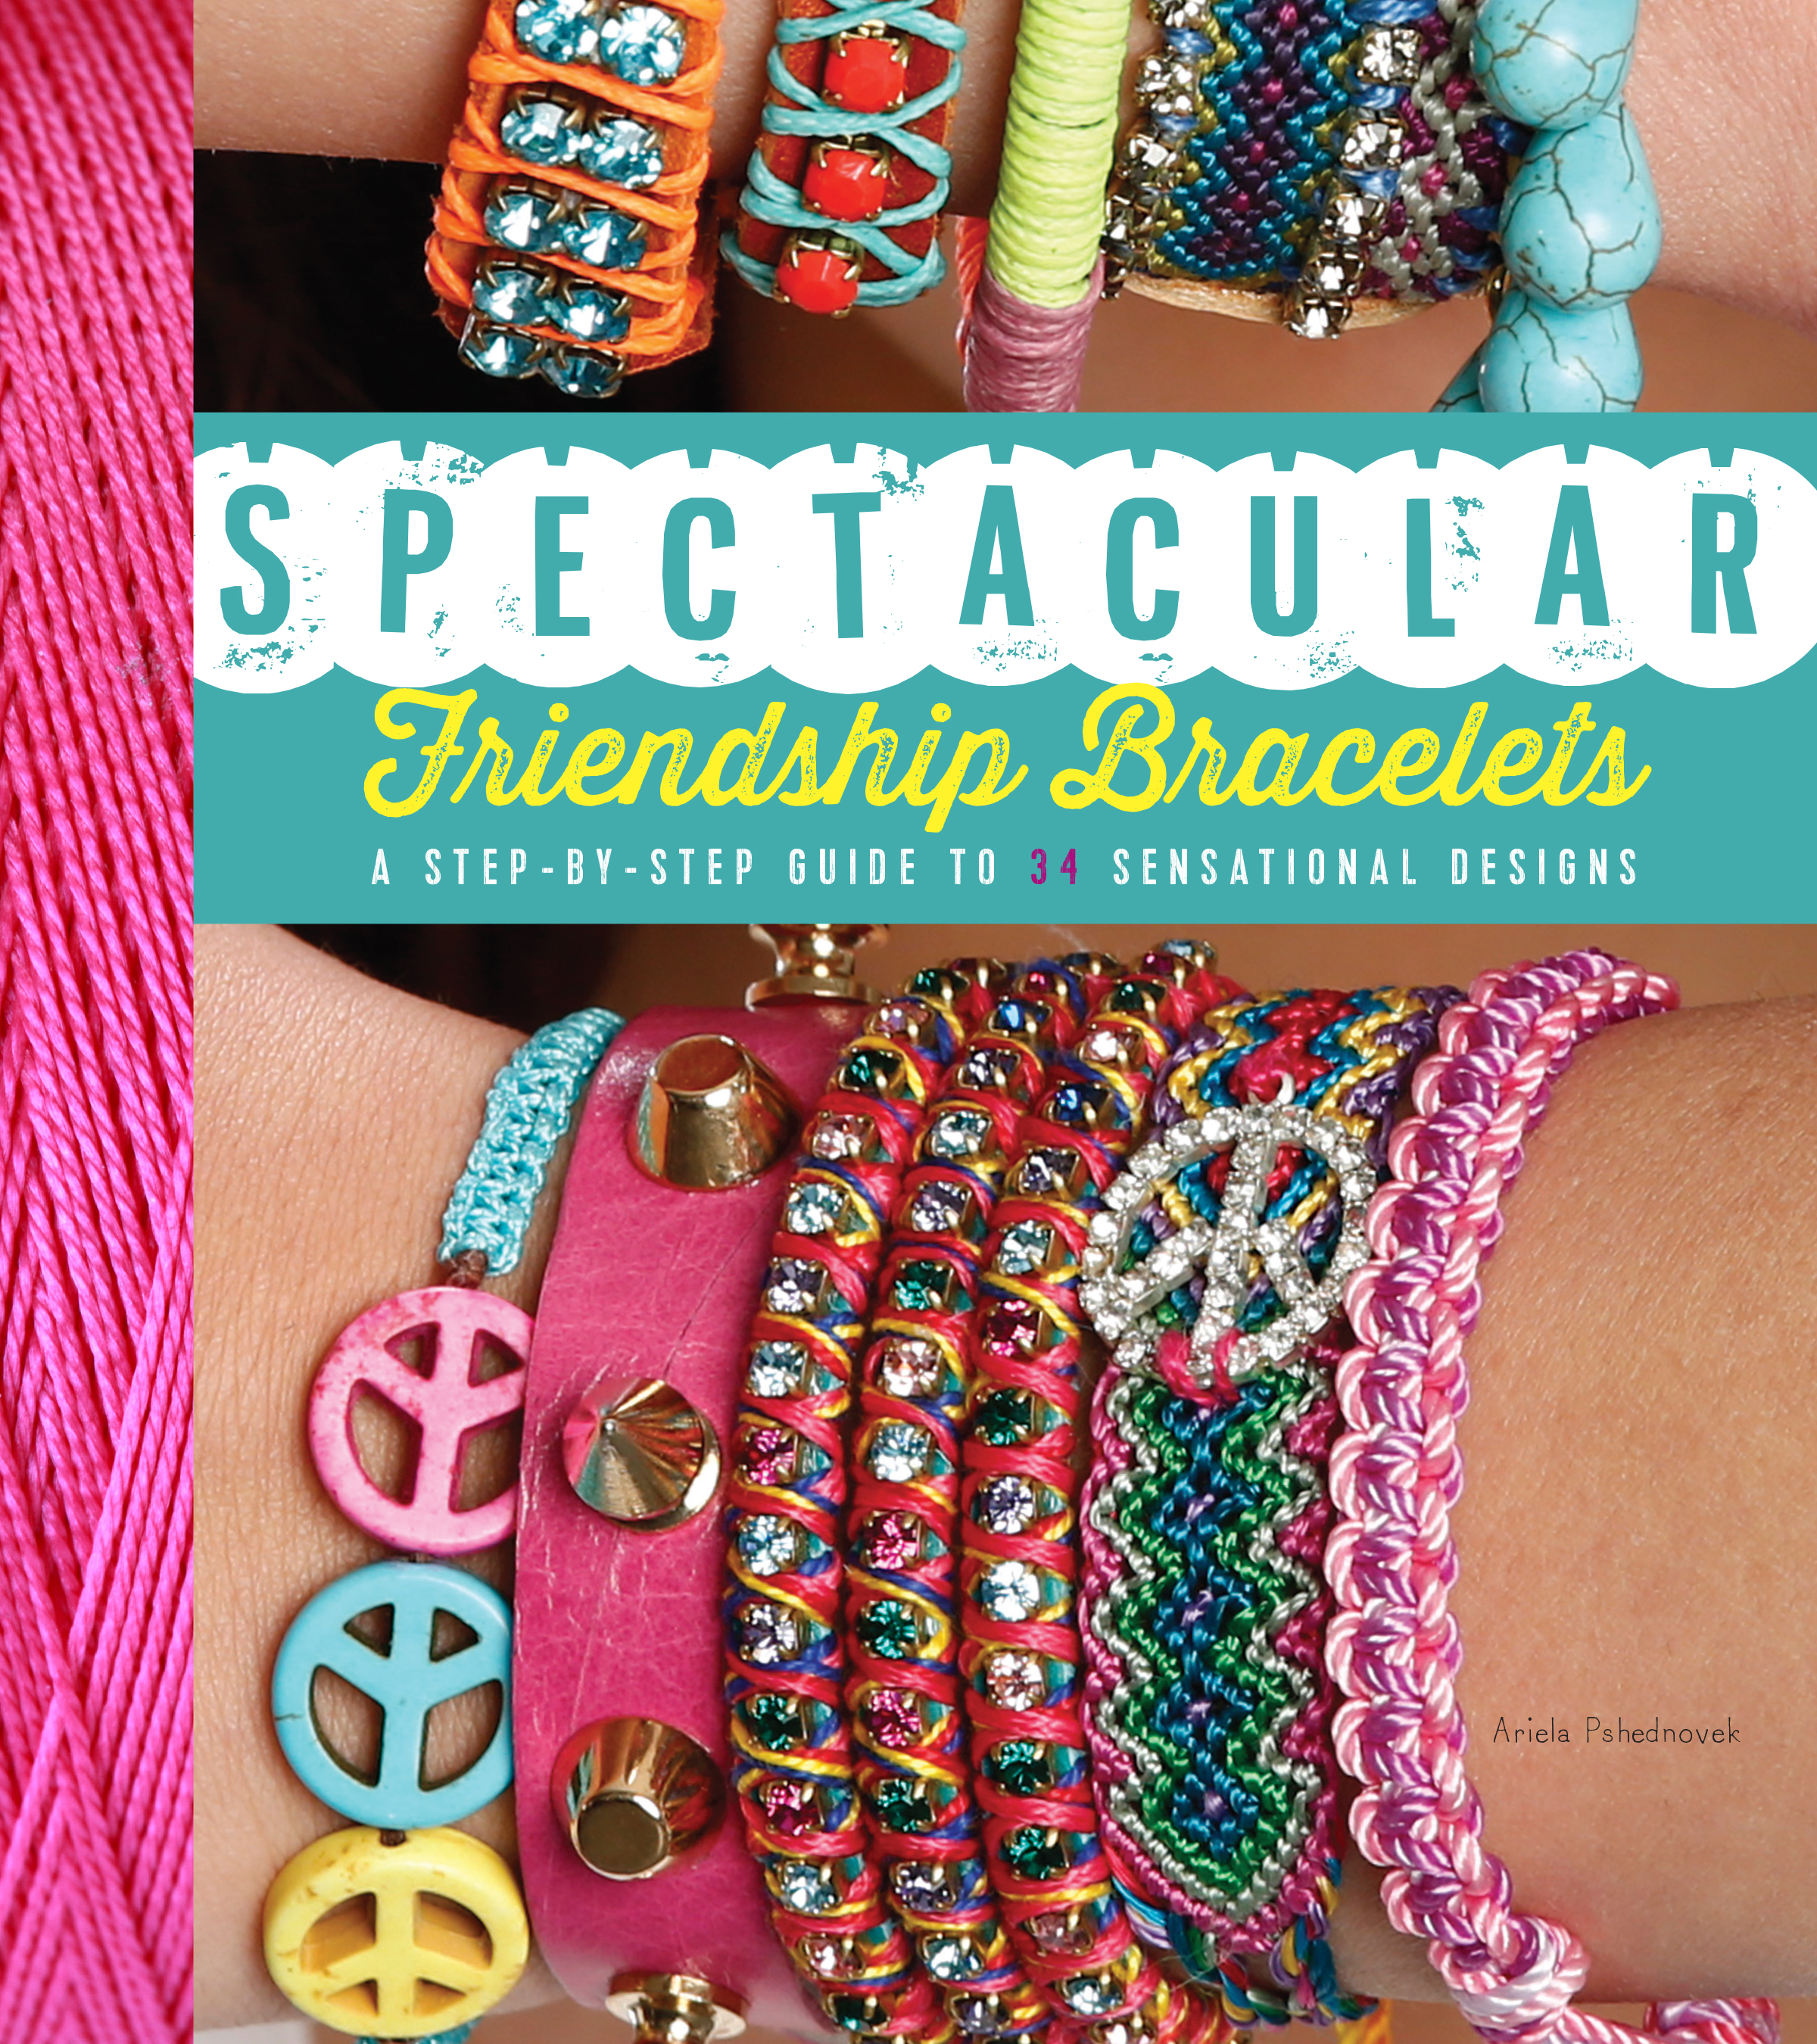 Spectacular Friendship Bracelets: A Step-by-Step Guide to 34 Sensational Designs